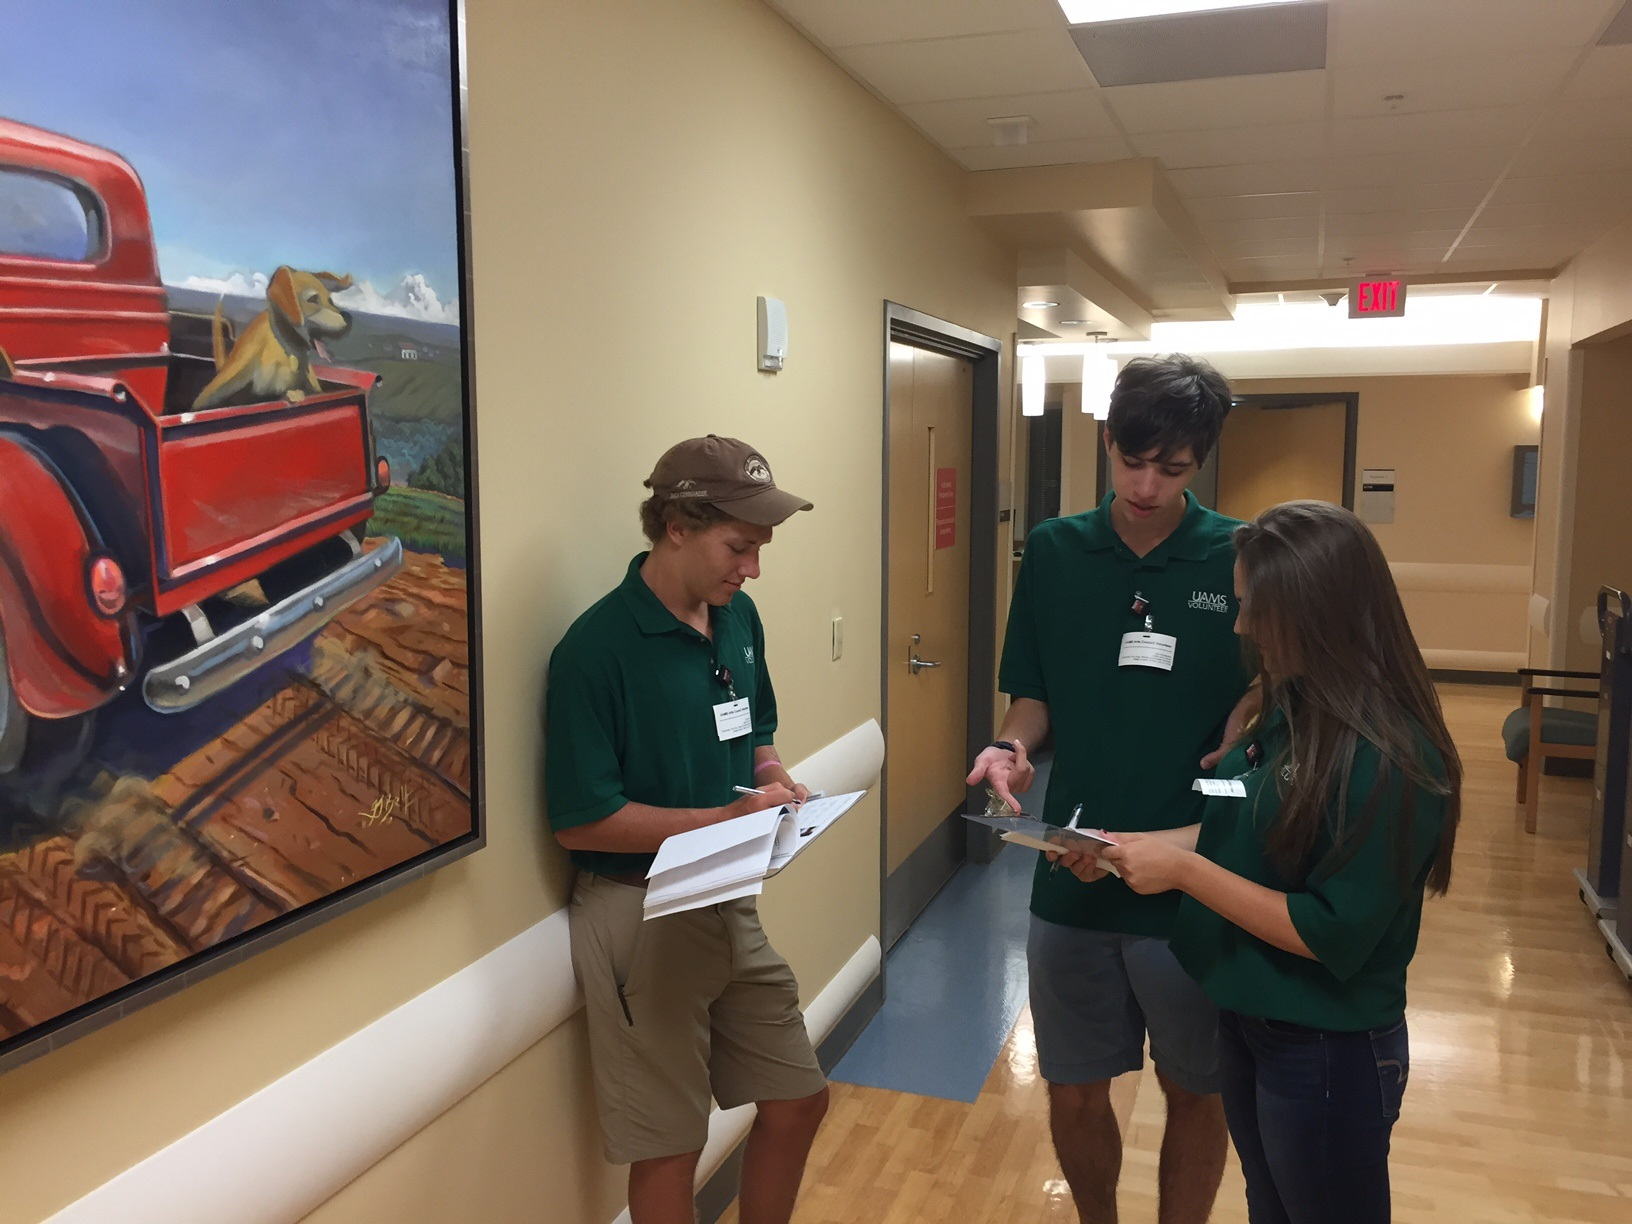 Scouts cataloged the art hanging in the University of Arkansas Medical Center to create a website so that patients, families, and visitors can learn more about the art that is hanging throughout the hospital. You can see the art at: http://arts.uams.edu/art/